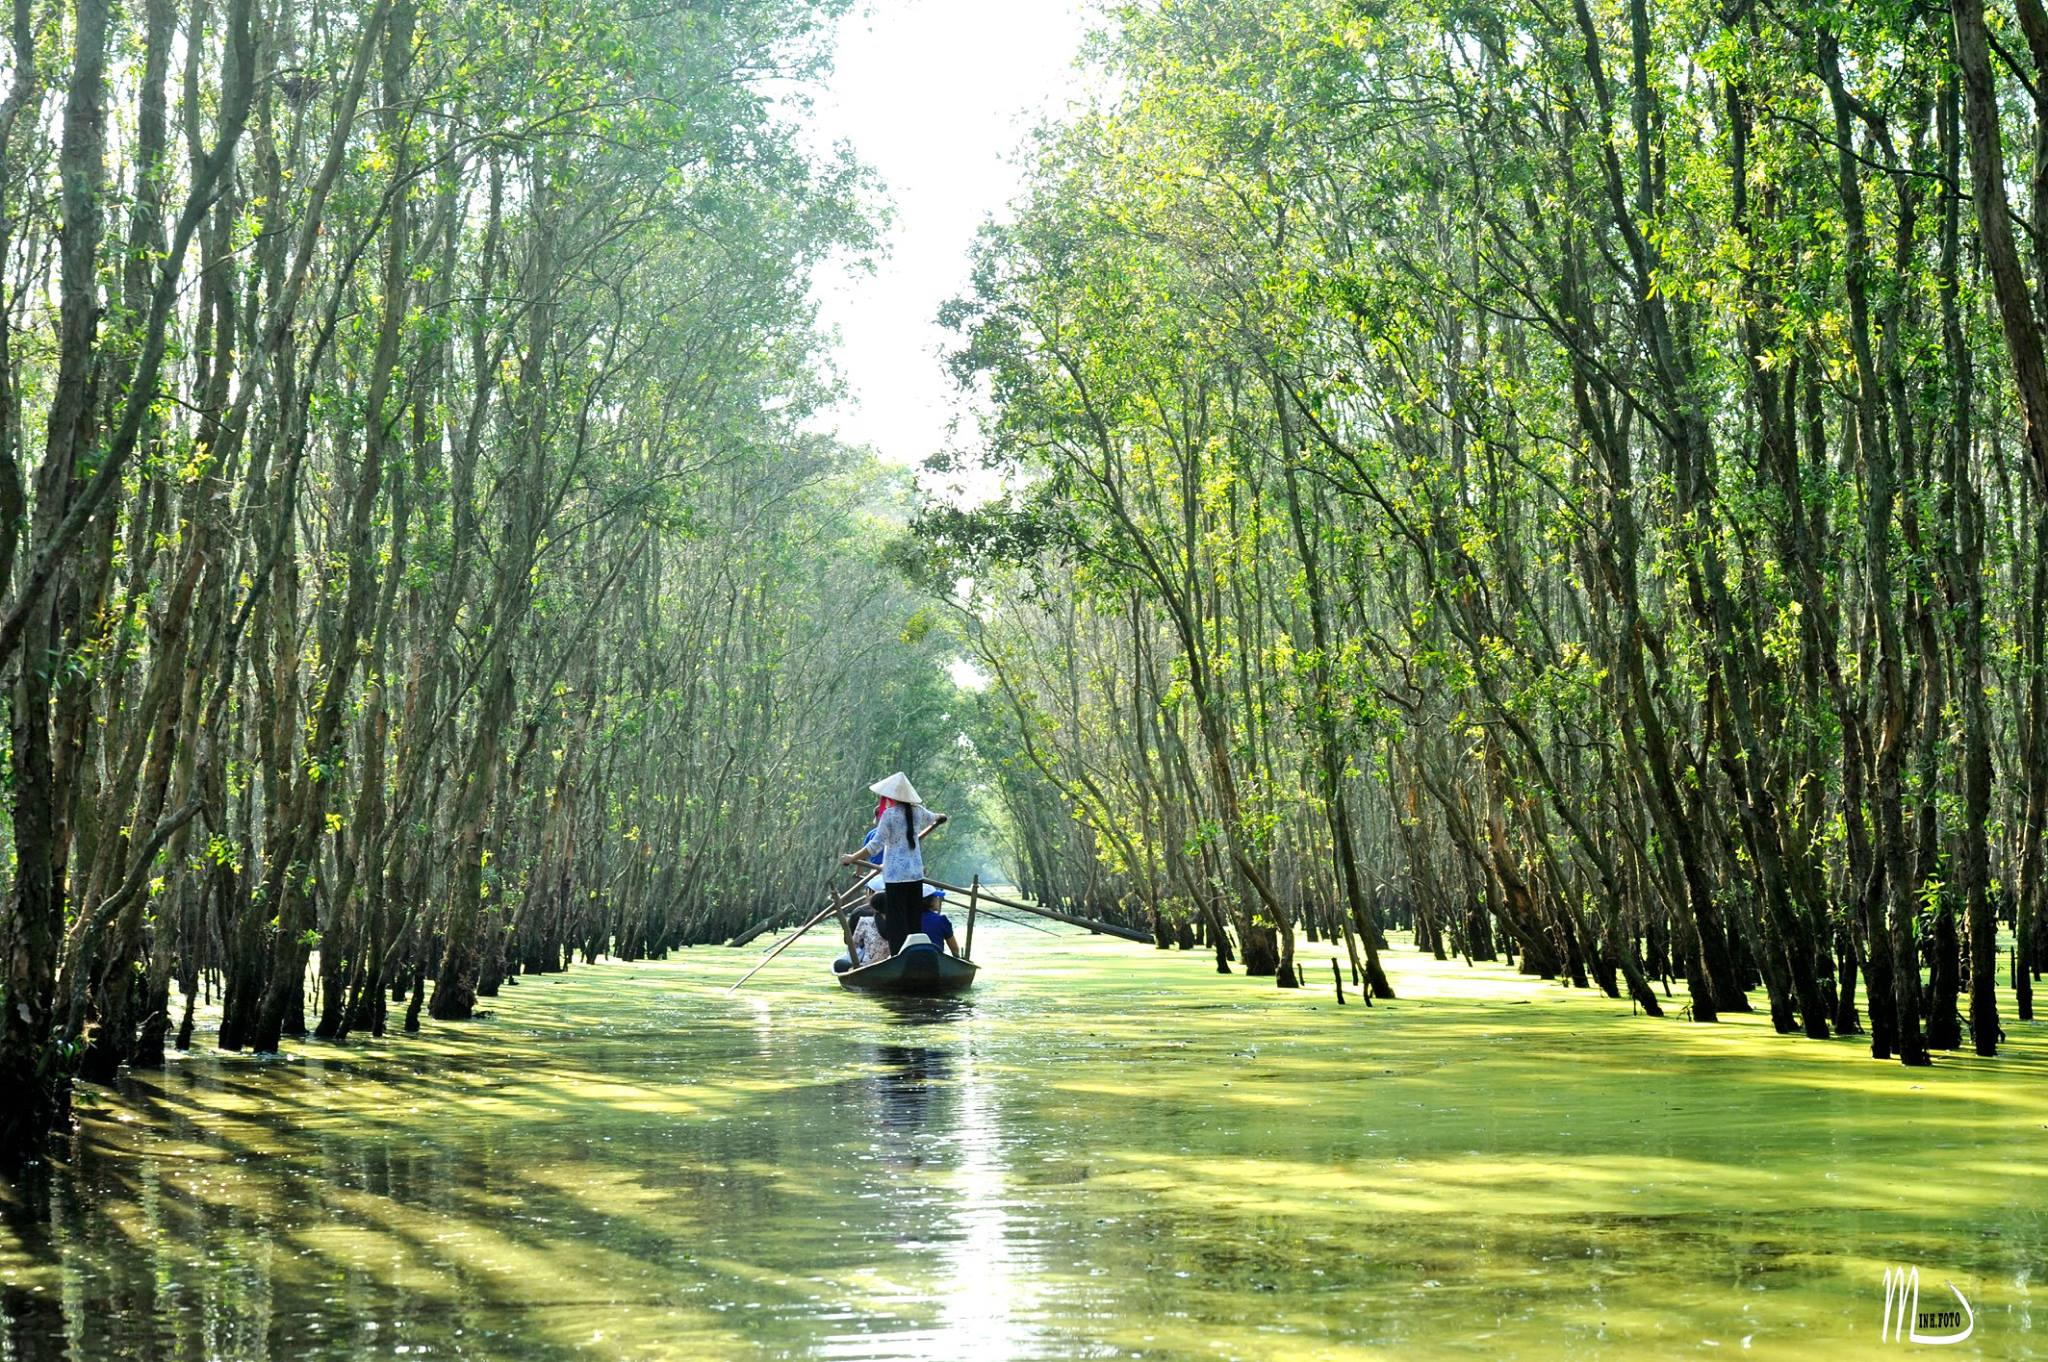 Mekong Delta Cruise & Homestay 2 days / 1 night